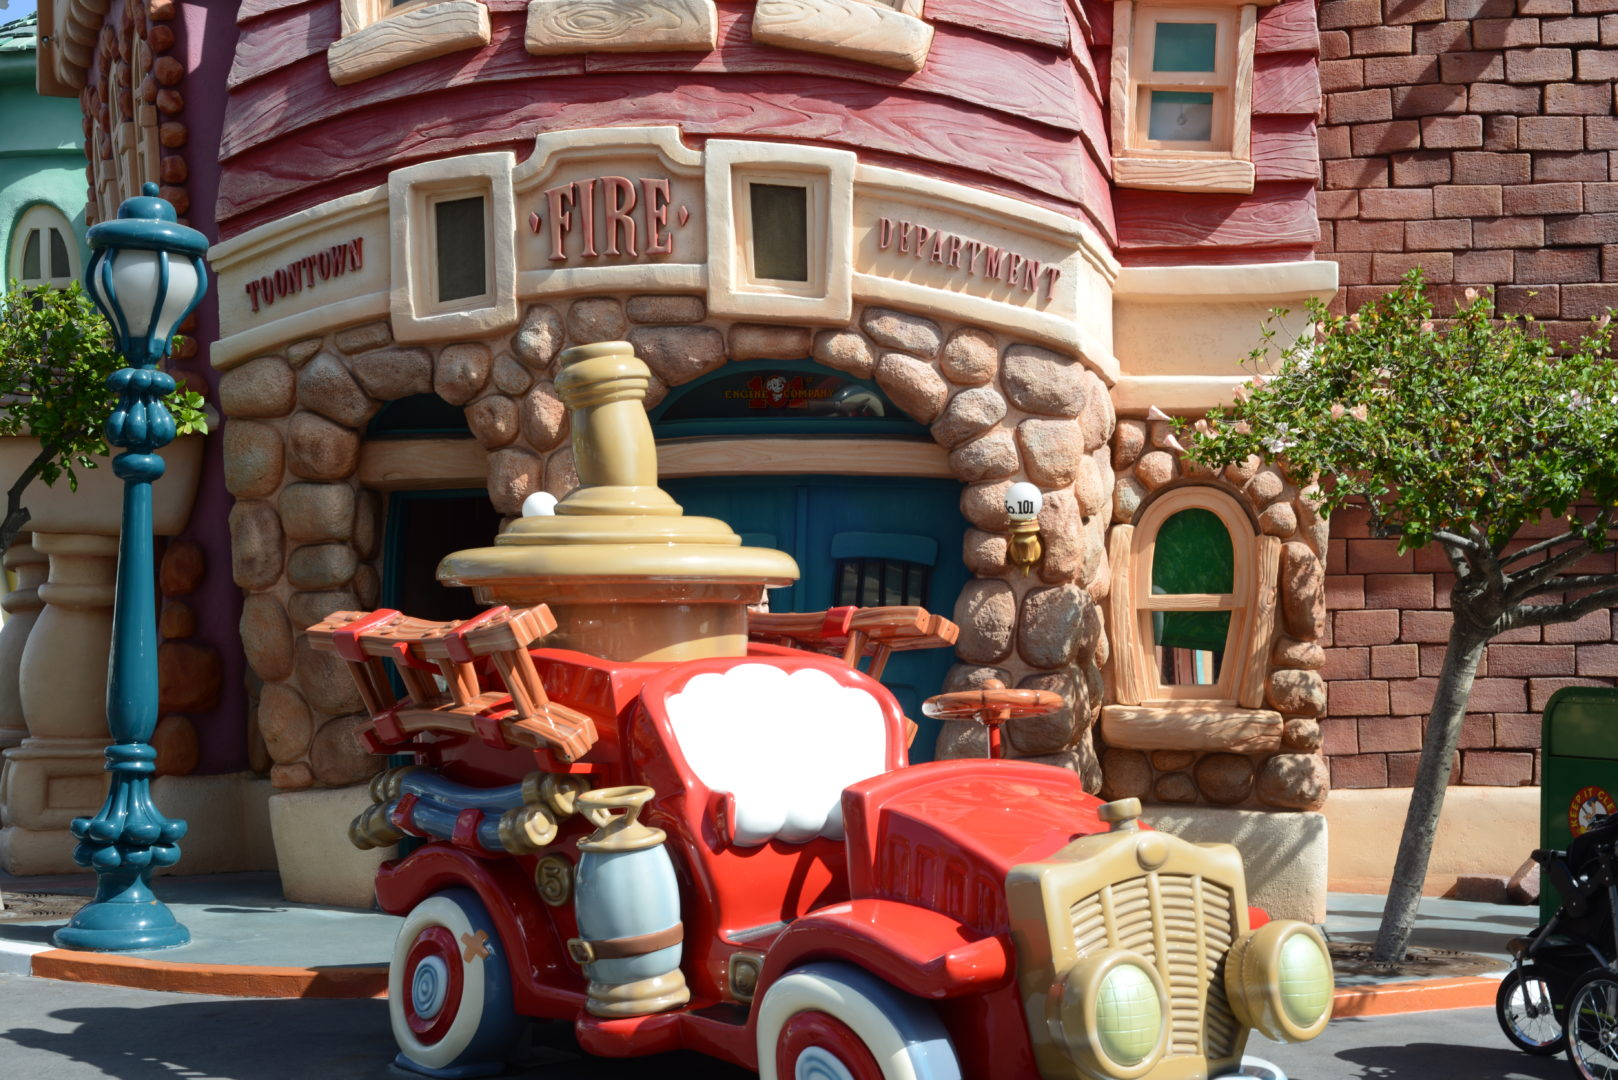 Mickey's Toon Town Fire Truck in Disneyland